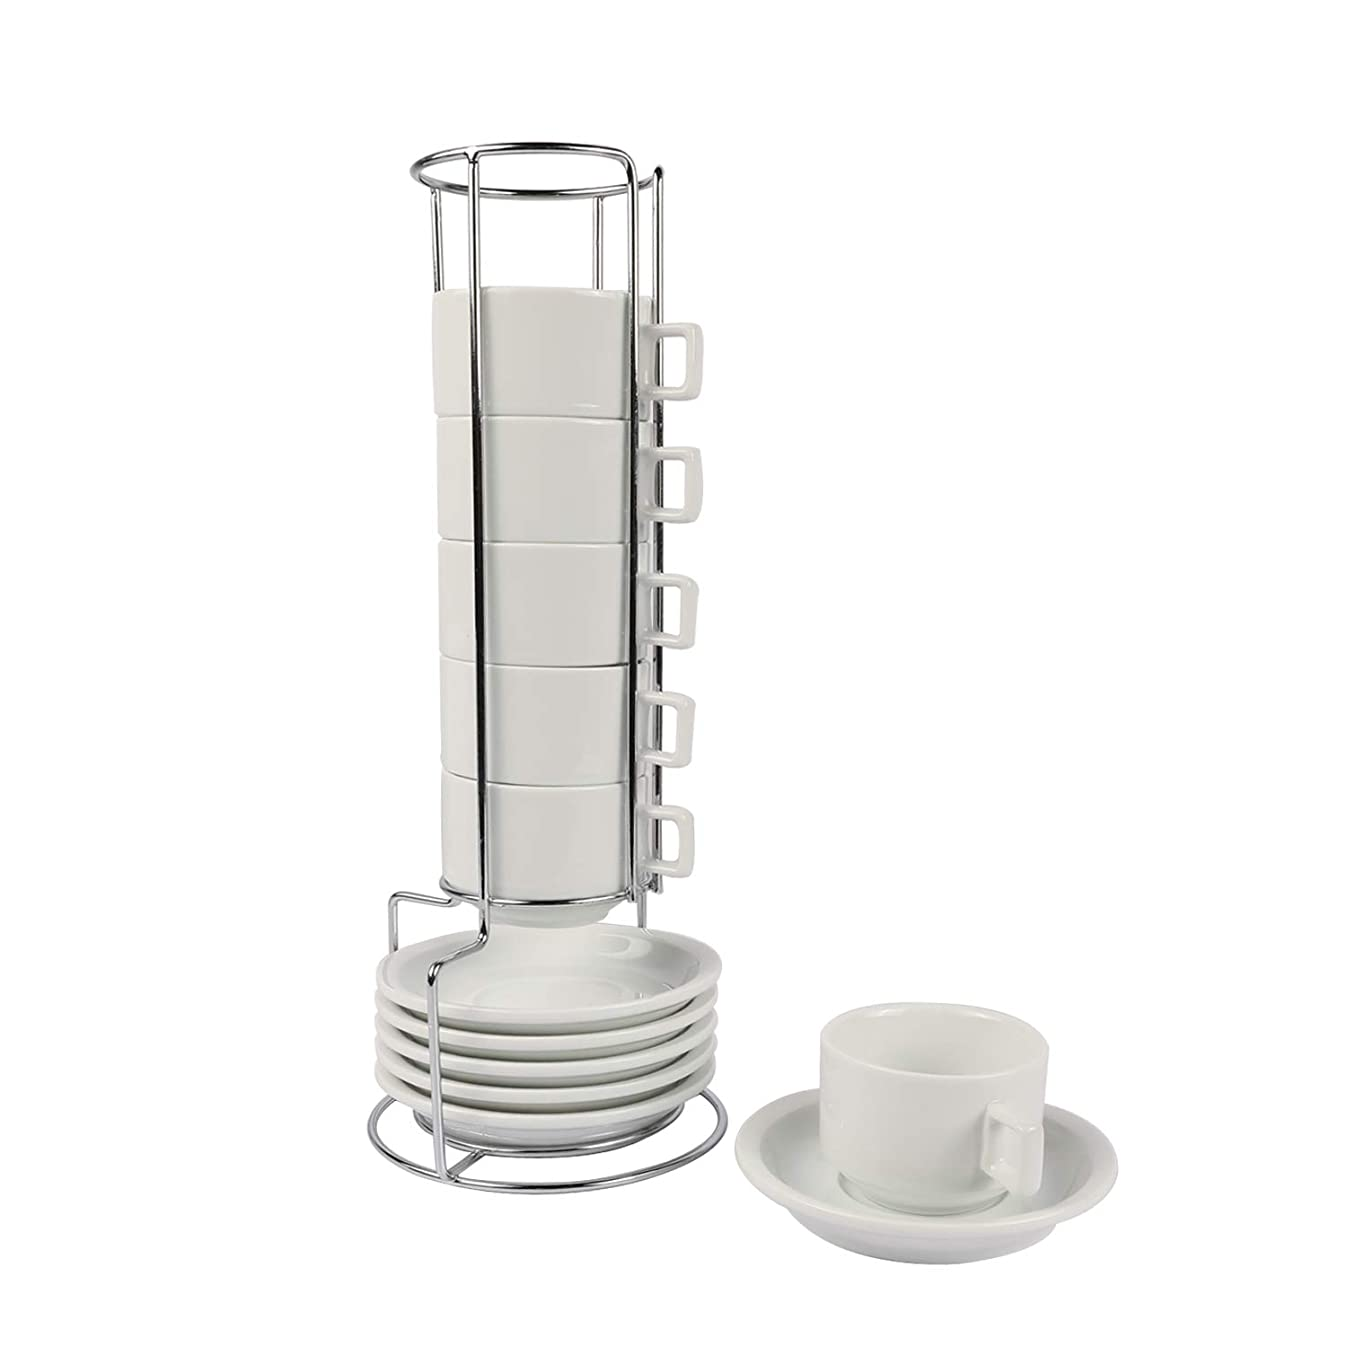 Houseables Espresso Cup and Saucer Set, Stackable Tea Cups with Metal Stand, 13 Pieces, 2.5 Ounce, White, Porcelain, Turkish Coffee Mug, Stacking Demitasse, Organizer Rack, Dishwasher Safe, Set of Six